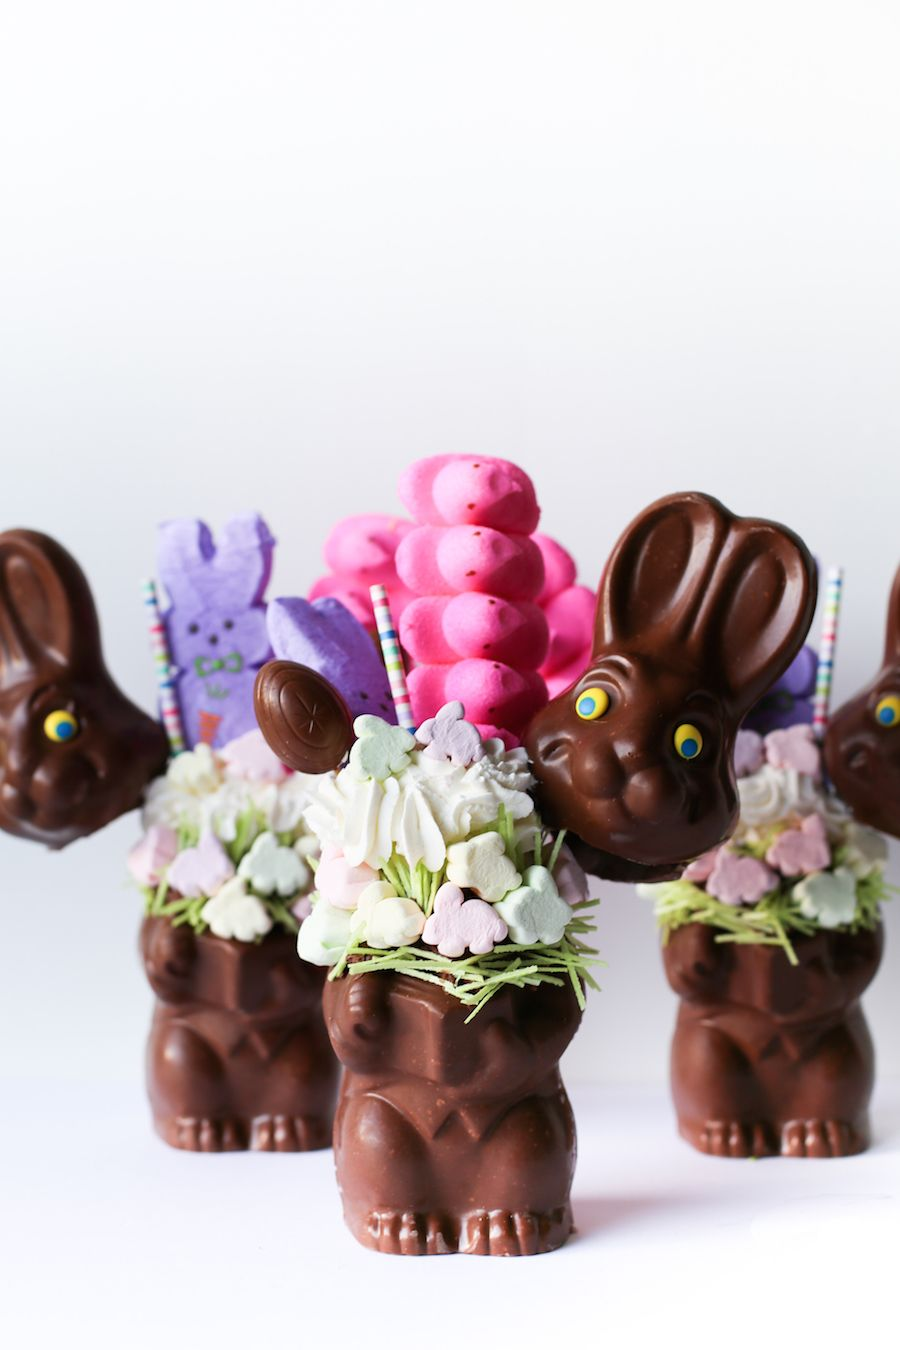 Easter bunny basket milkshake recipe milkshake easter baskets easter instead of negle Image collections